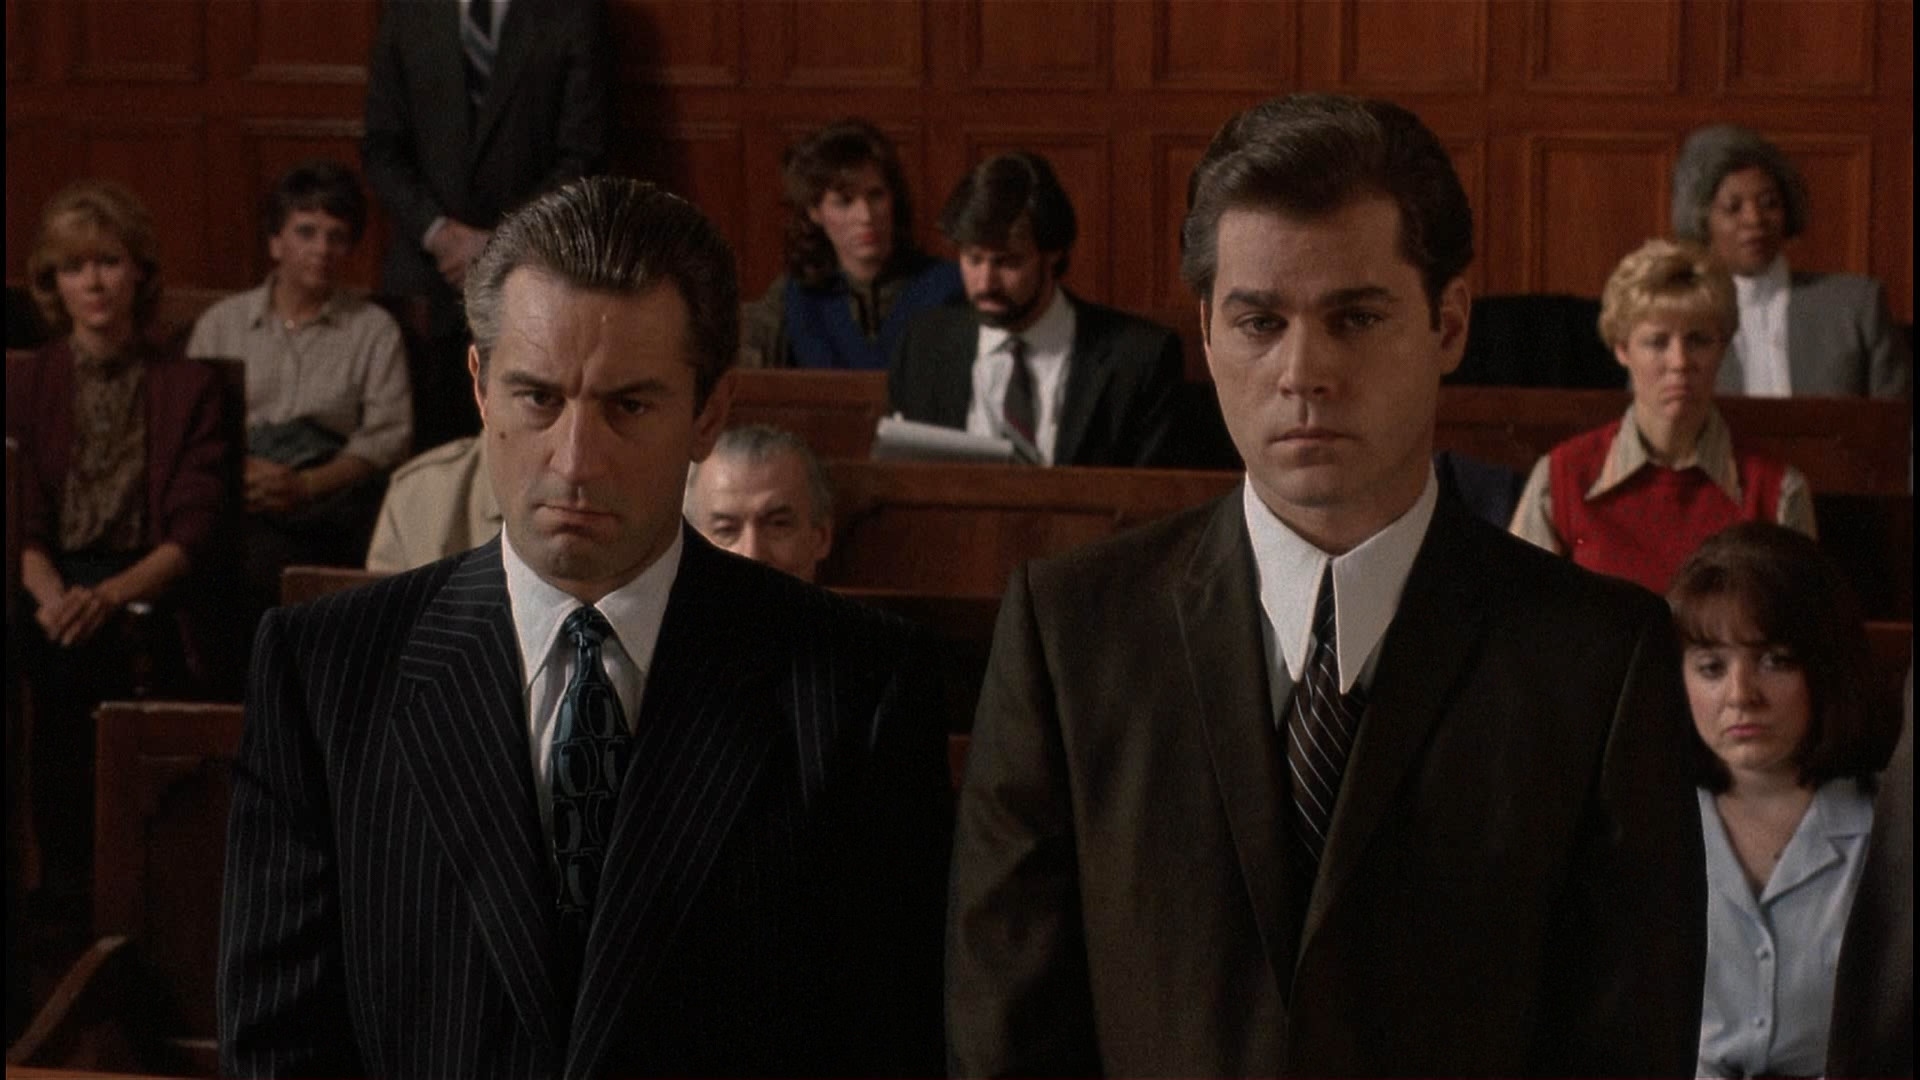 goodfellas wallpapers high quality download free